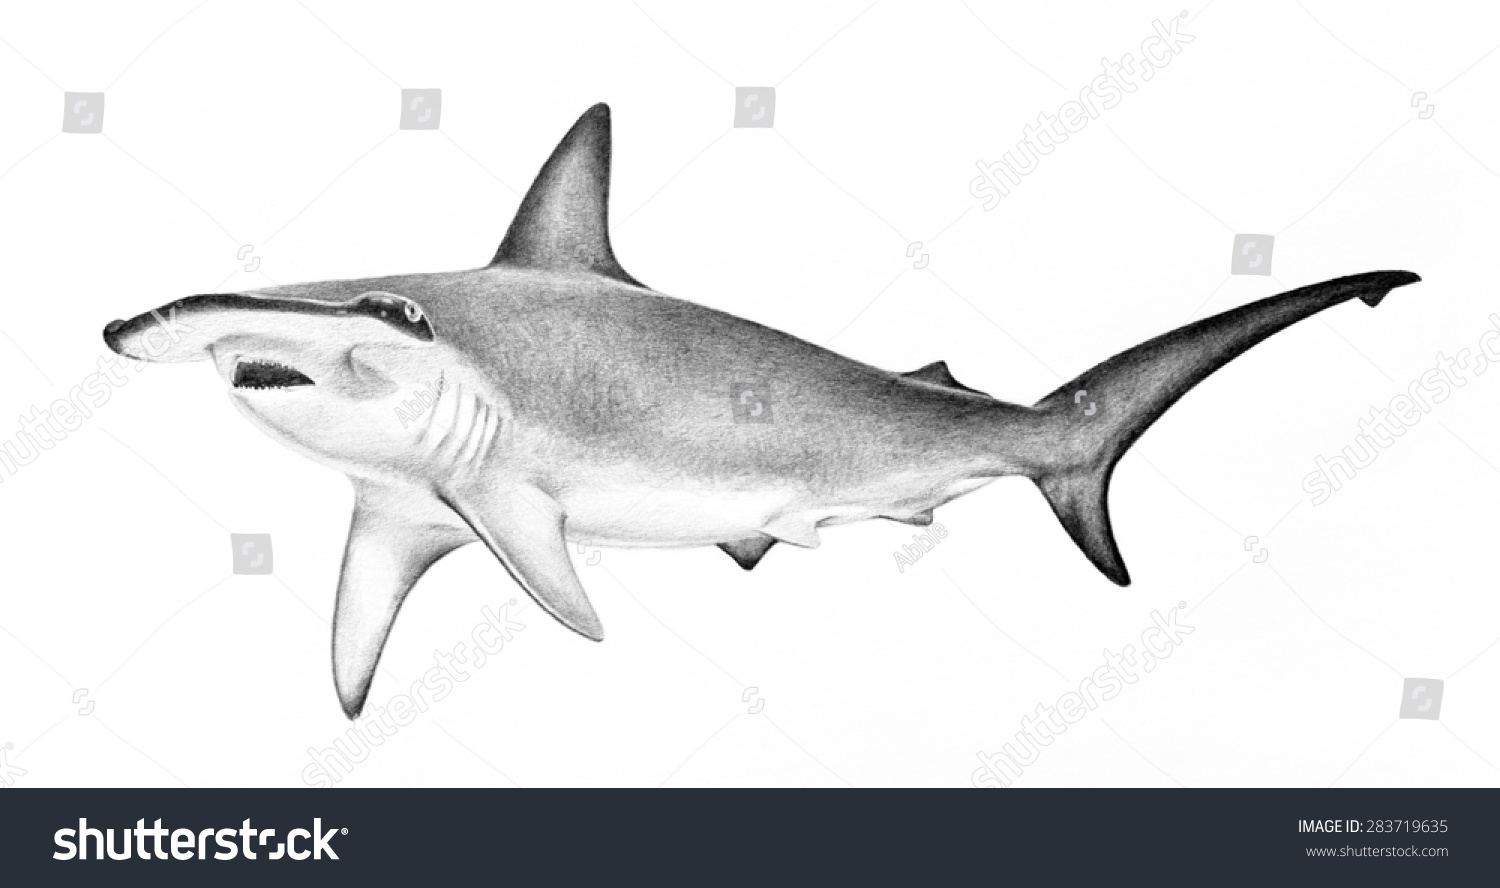 hammerhead shark illustration hand drawn sketch of hammerhead shark swimming dangerous scary animal wildlife